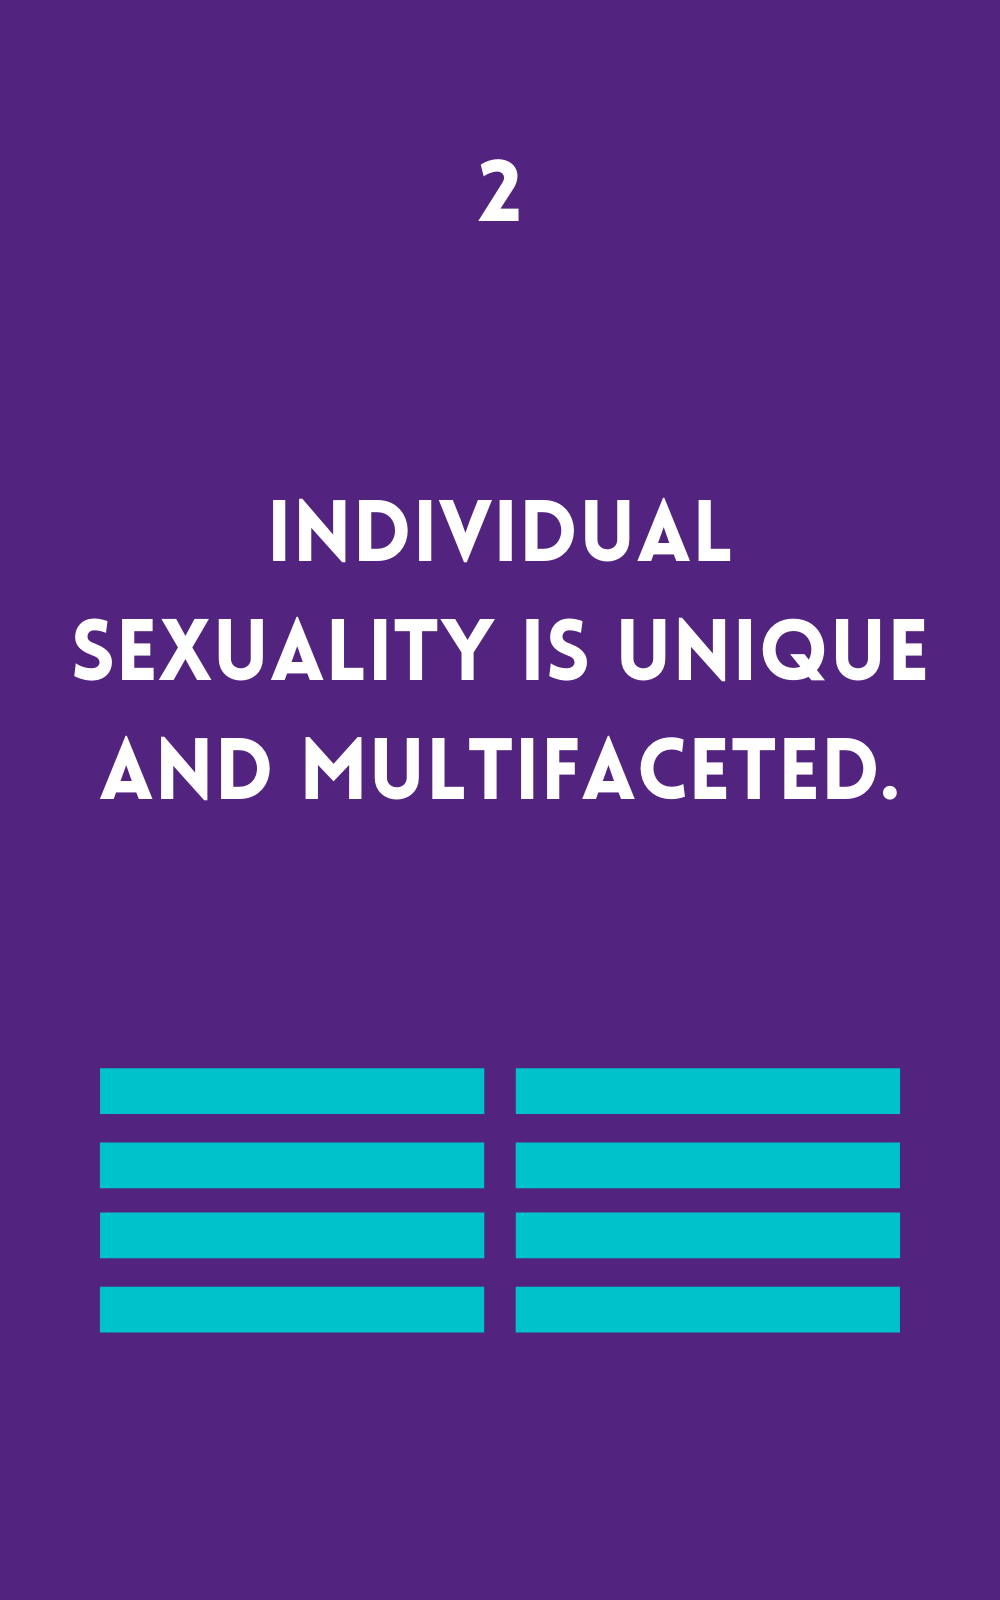 Individual sexuality is unique and multifaceted